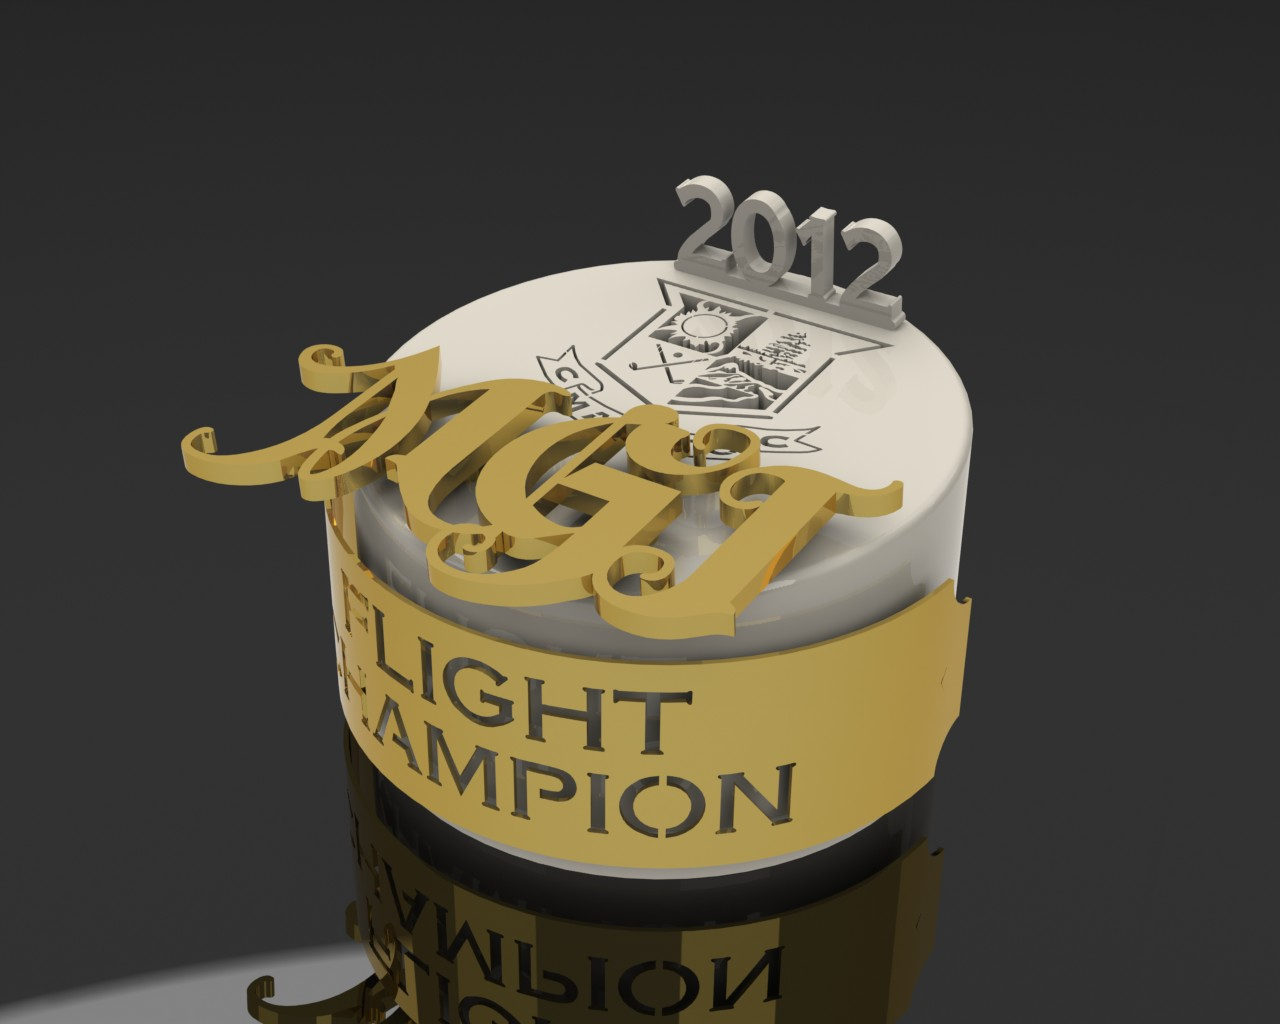 Manito Trophy